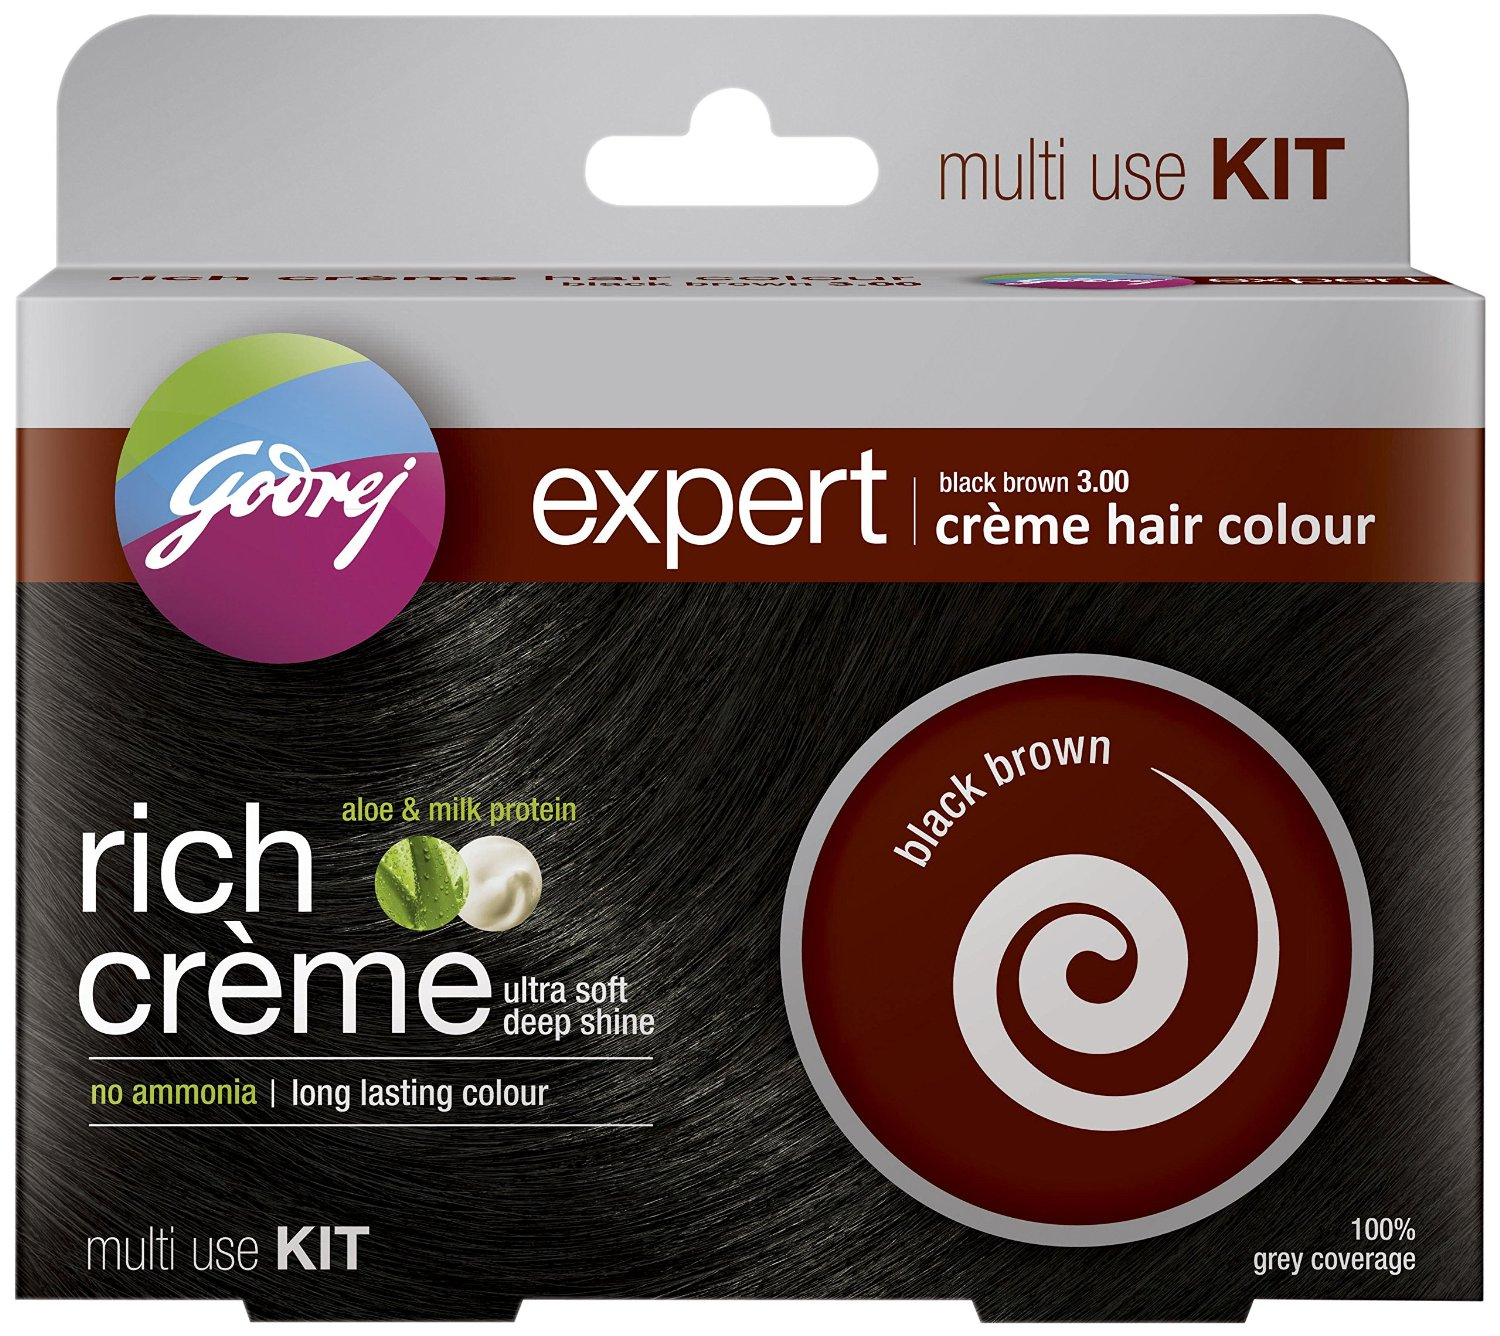 Godrej Expert Rich Creme Hair Colour Image